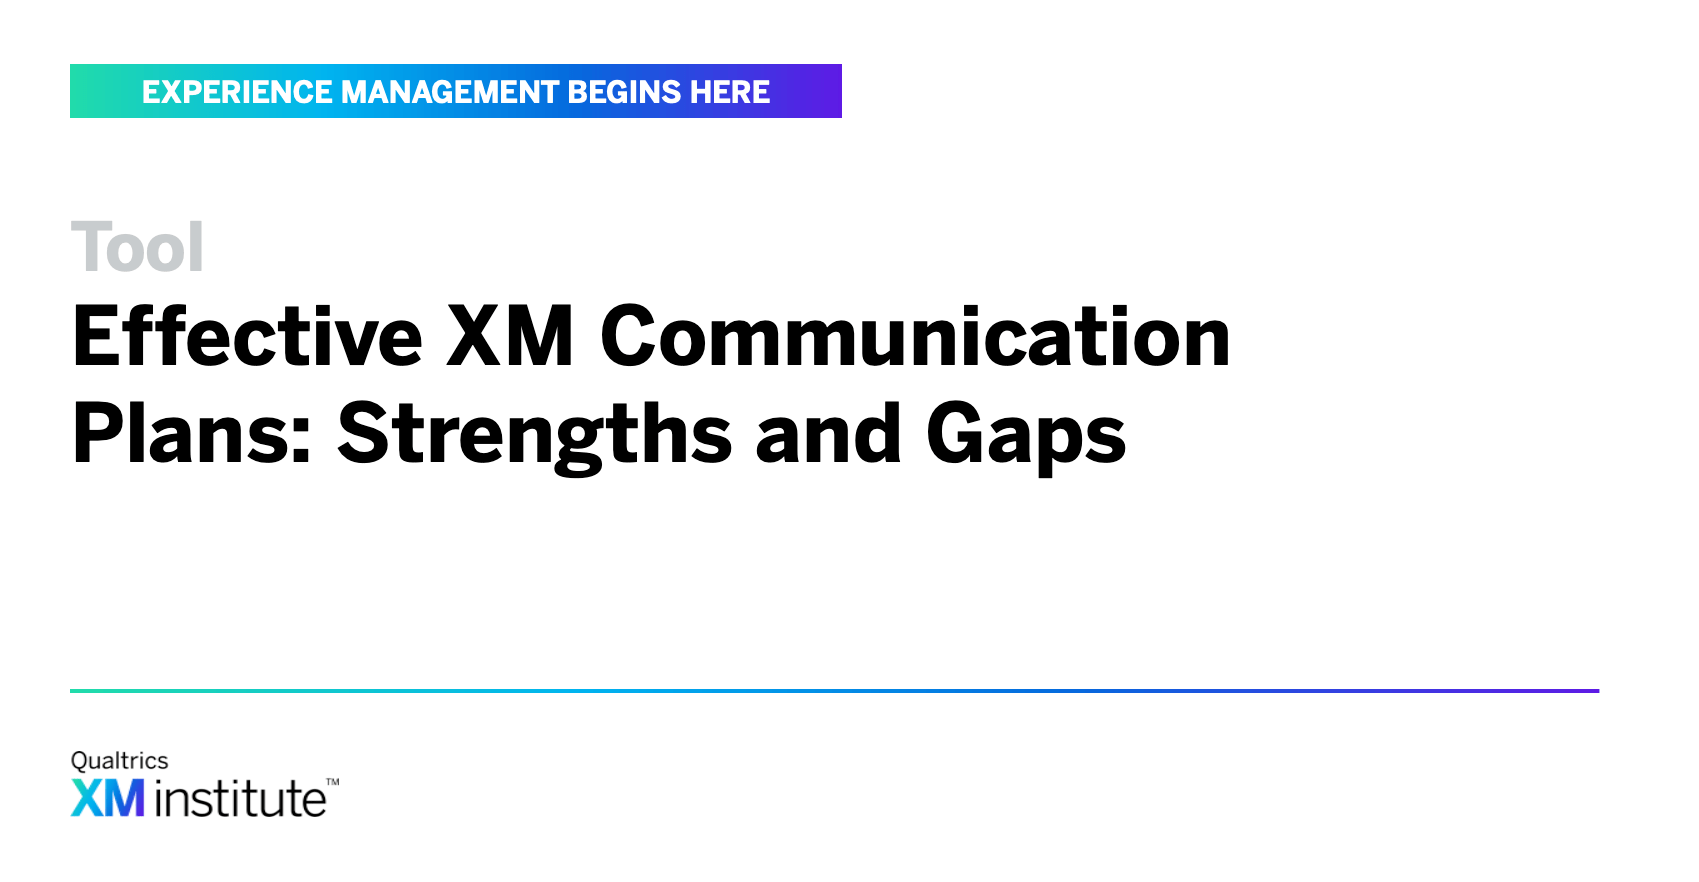 Worksheet Effective Xm Communication Plans